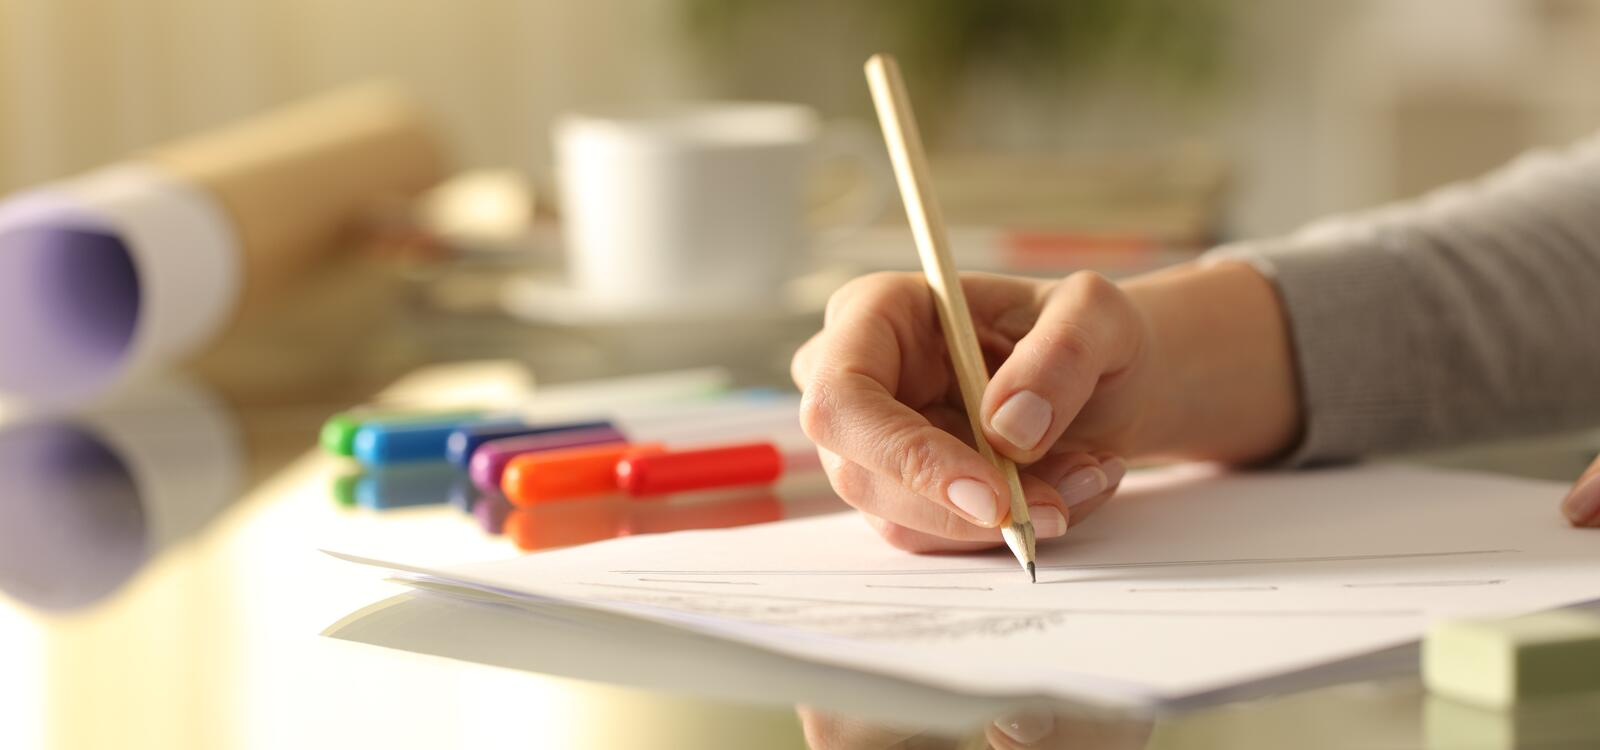 A woman uses a pencil to draw and take notes on a white paper